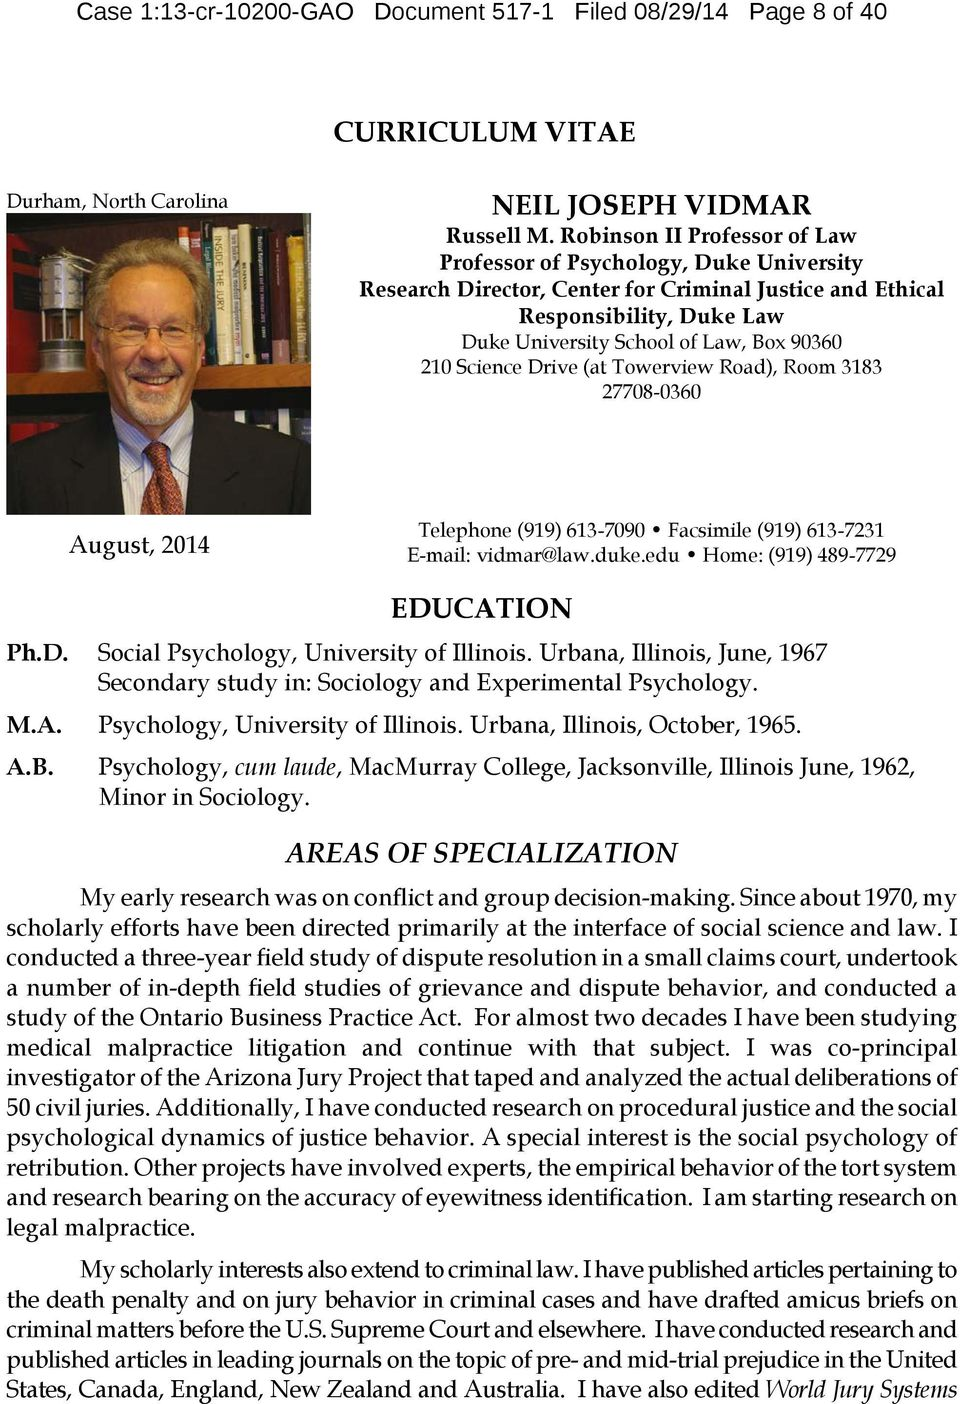 Science Drive (at Towerview Road), Room 3183 27708-0360 August, 2014 Telephone (919) 613-7090 Facsimile (919) 613-7231 E-mail: vidmar@law.duke.edu Home: (919) 489-7729 EDUCATION Ph.D. Social Psychology, University of Illinois.